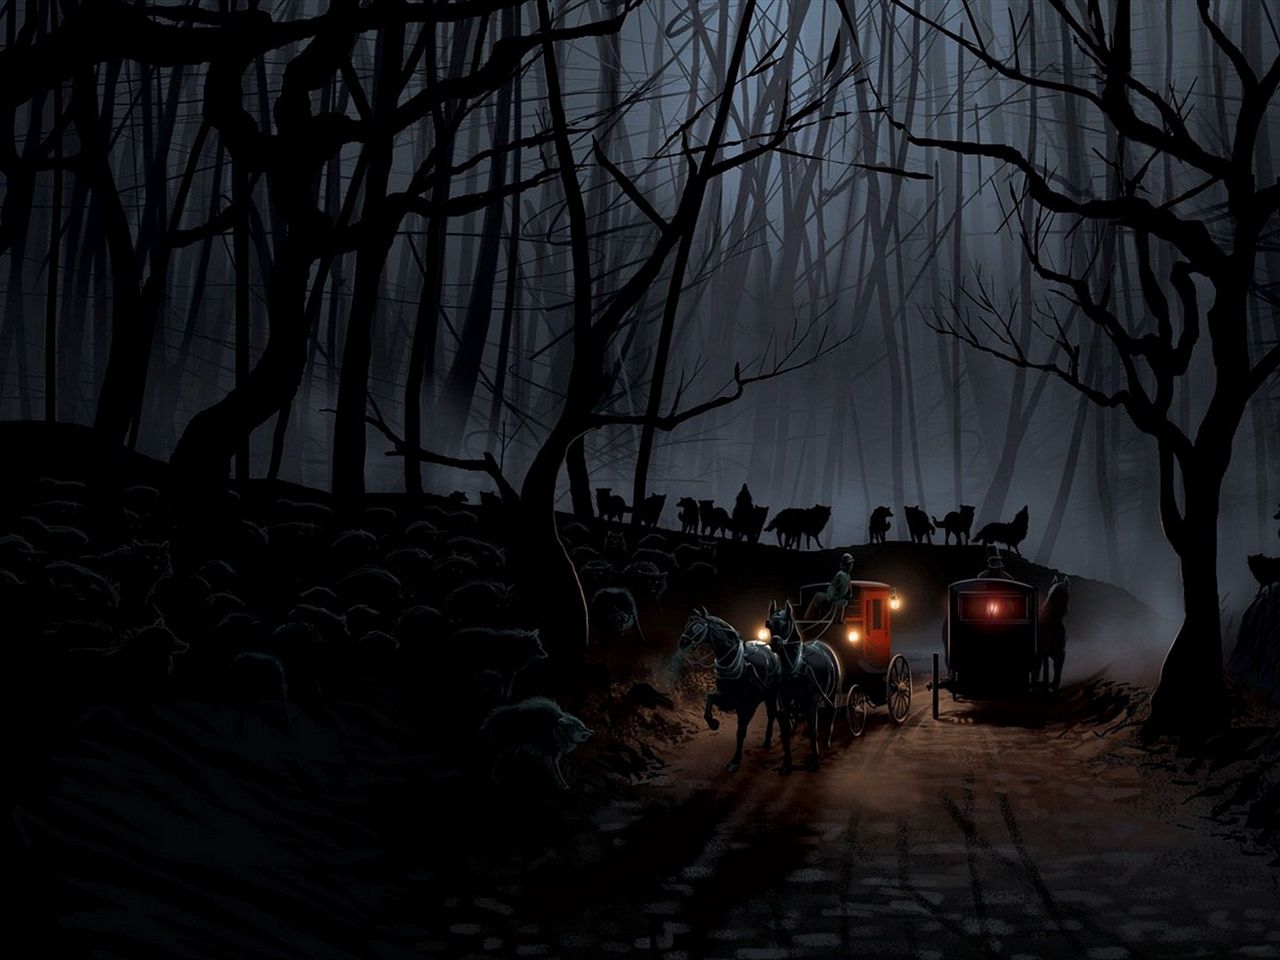 1280x960 Wallpaper carriage, wood, night, wolves, flight